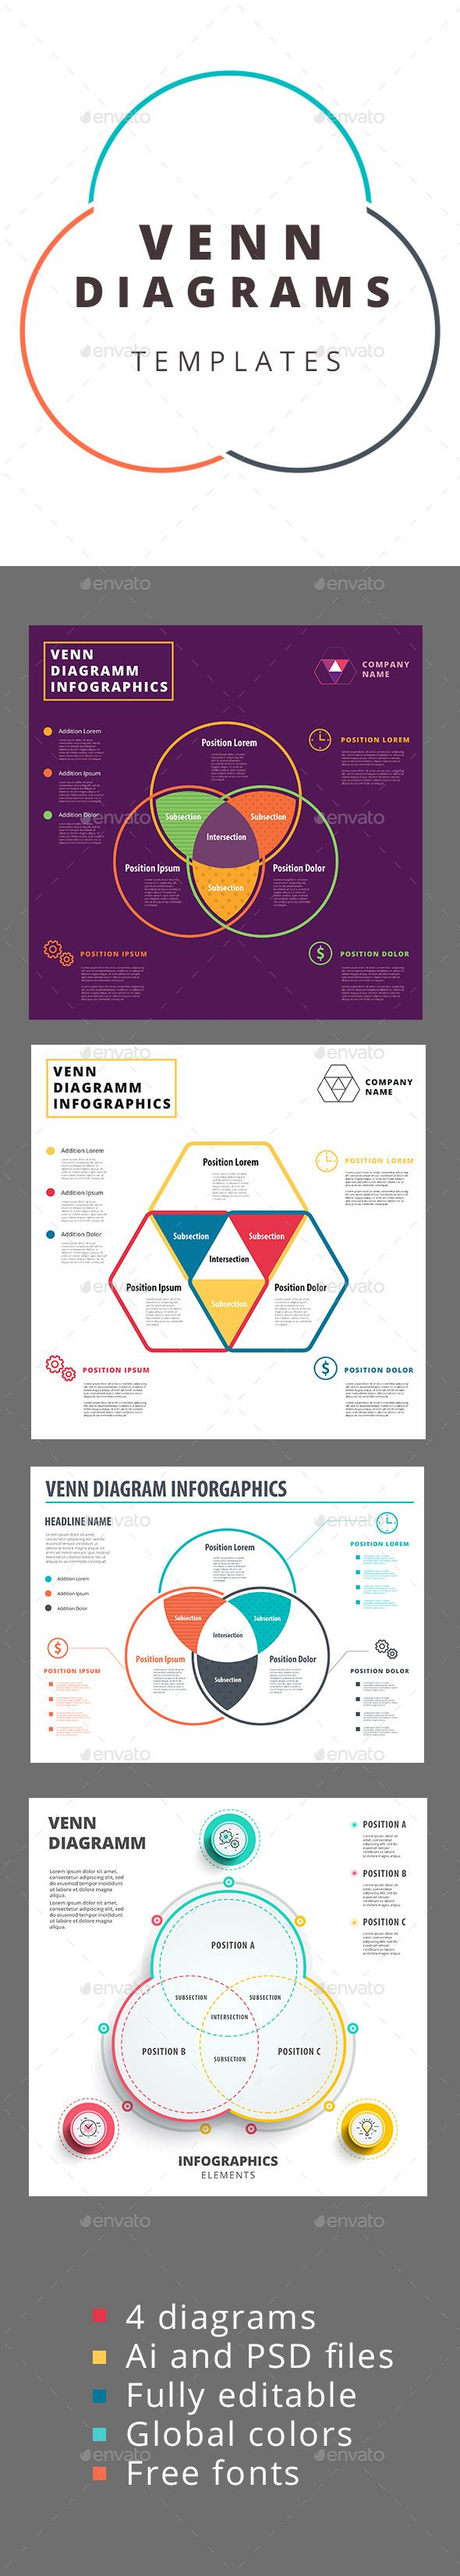 Ms de 25 ideas increbles sobre plantilla diagrama de venn en venn diagram templates ccuart Choice Image